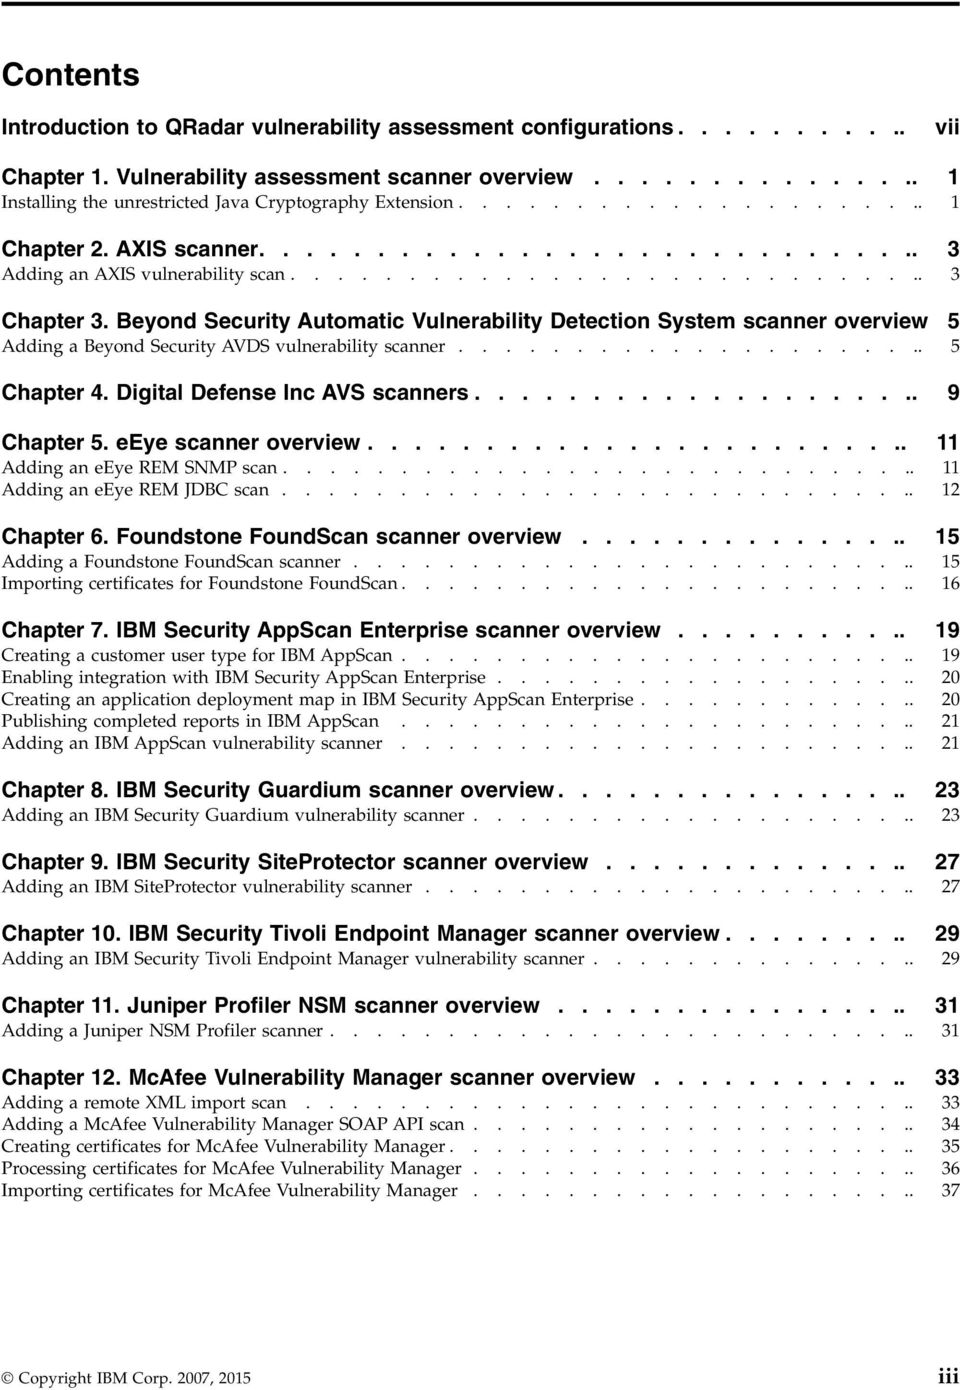 Beyond Security Automatic Vulnerability Detection System scanner overview 5 Adding a Beyond Security AVDS vulnerability scanner..................... 5 Chapter 4. Digital Defense Inc AVS scanners.